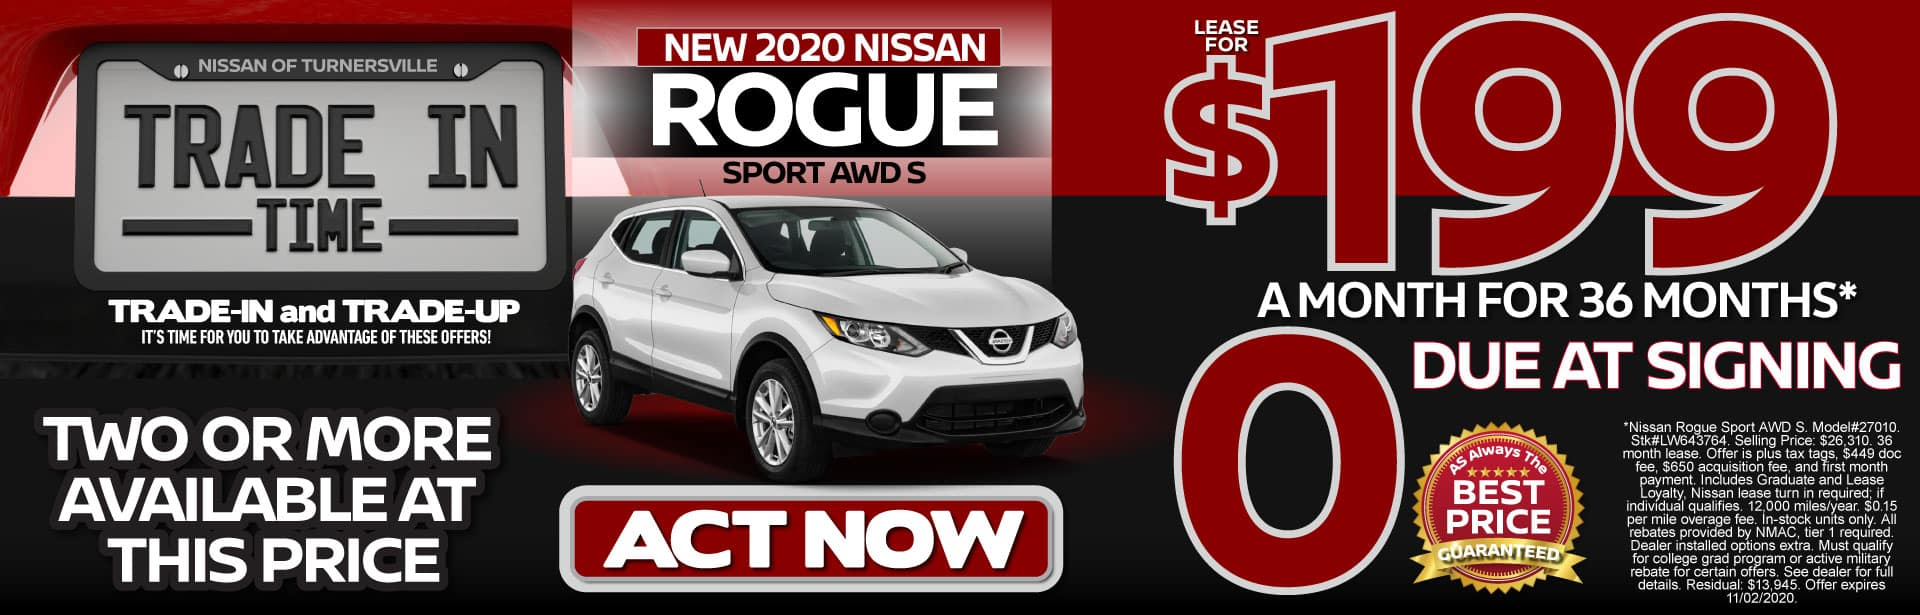 New 2020 Rogue Sport Lease for $199 a month for 36 months   Act Now